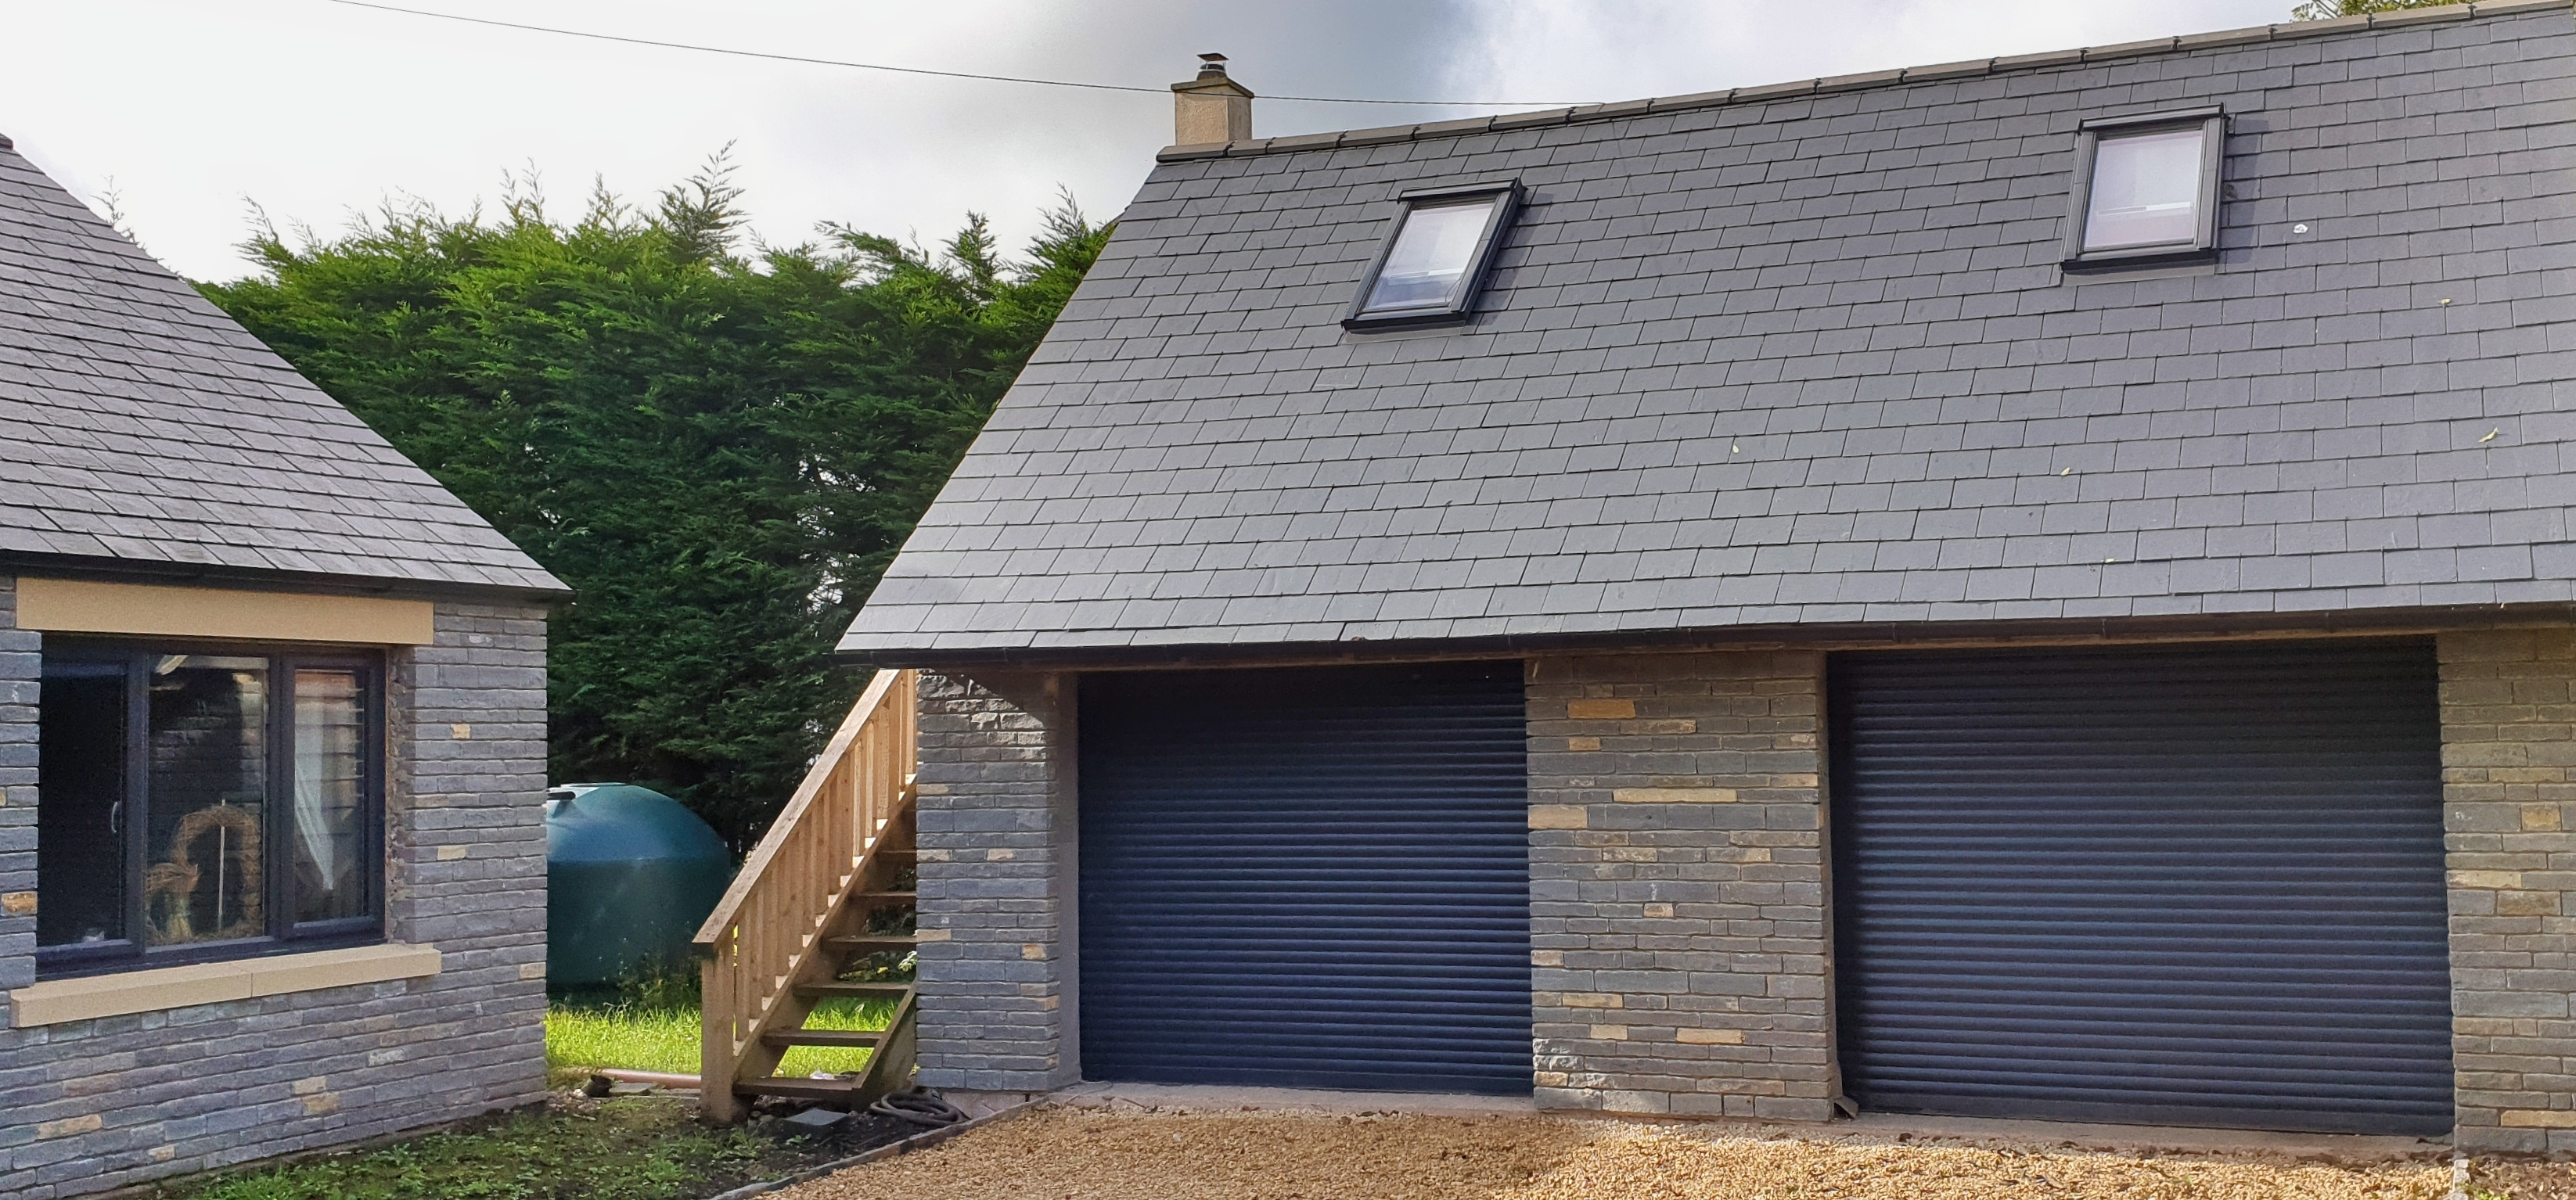 Blue Lias stone and slate roof, side extension and double garage.